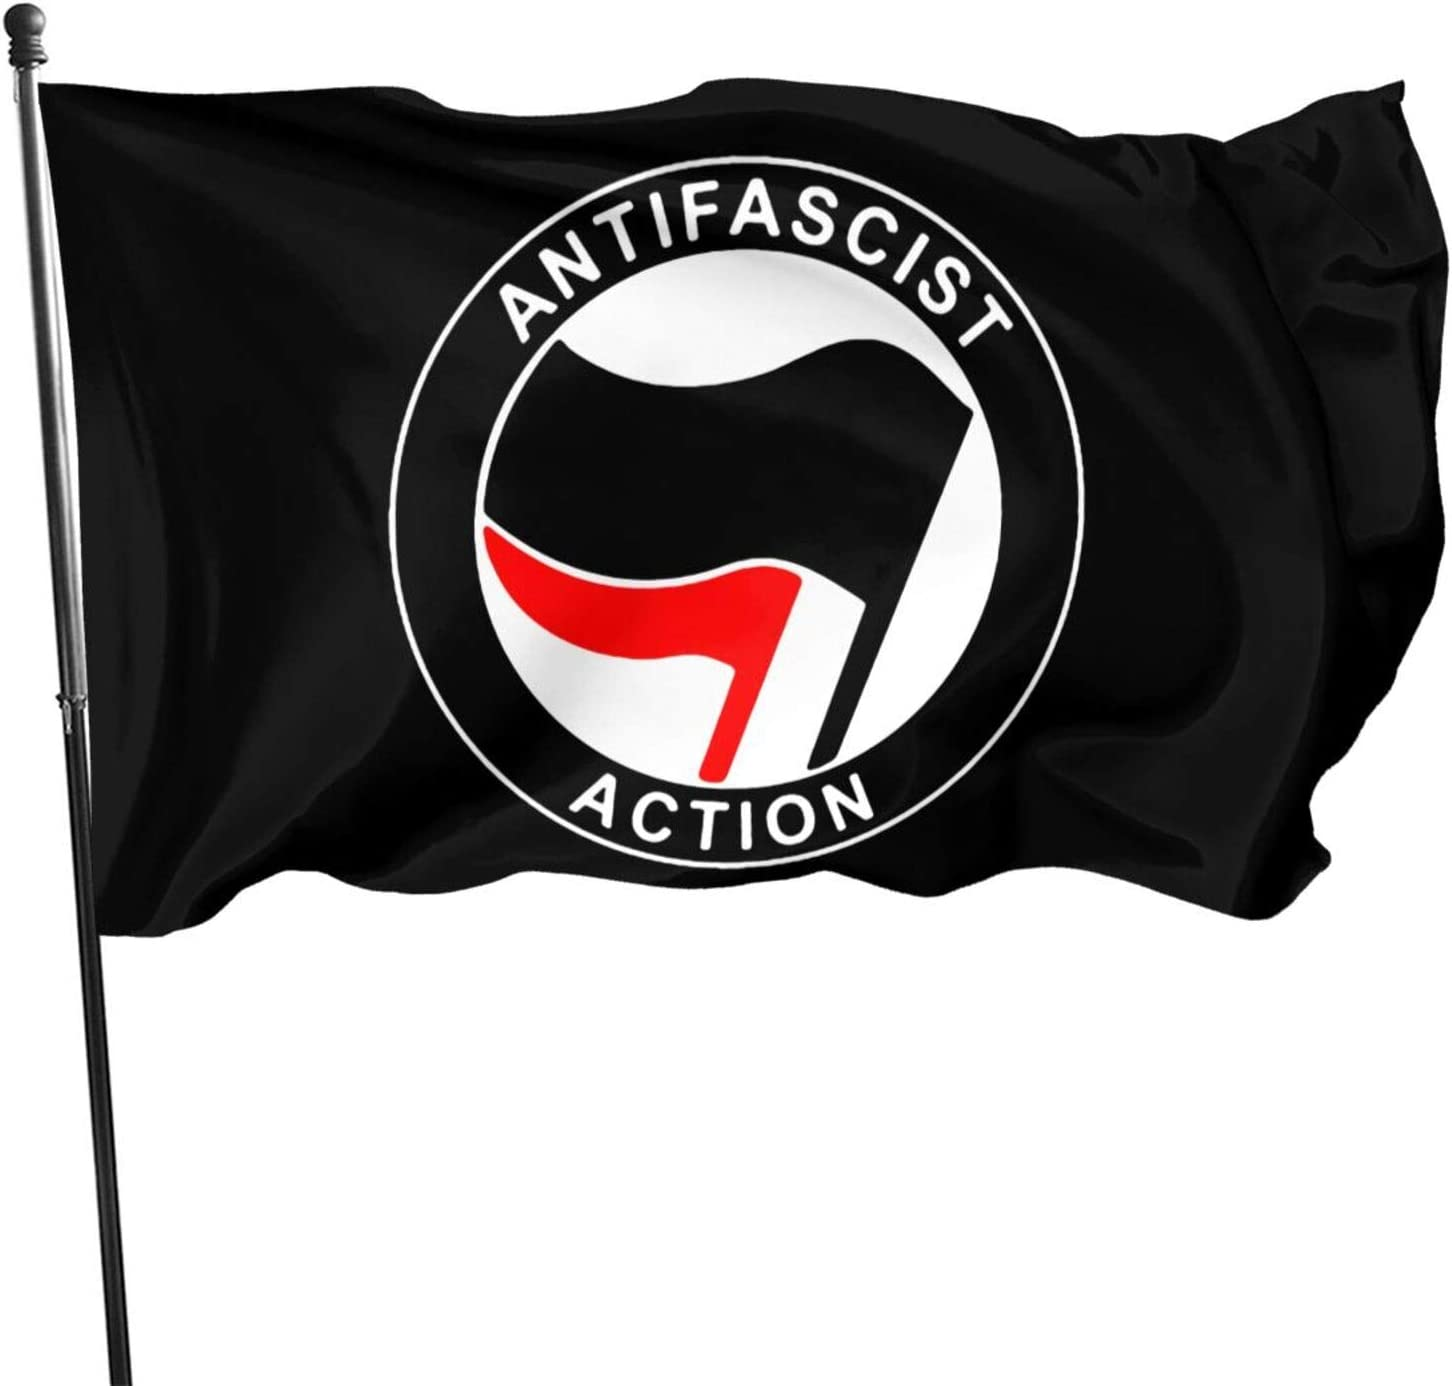 AIJEESI Anti-FA Garden Flag 3x5 FT Decorations Party Supplies, Flags for Home House Outdoor Indoor Decor (one Side Printed)